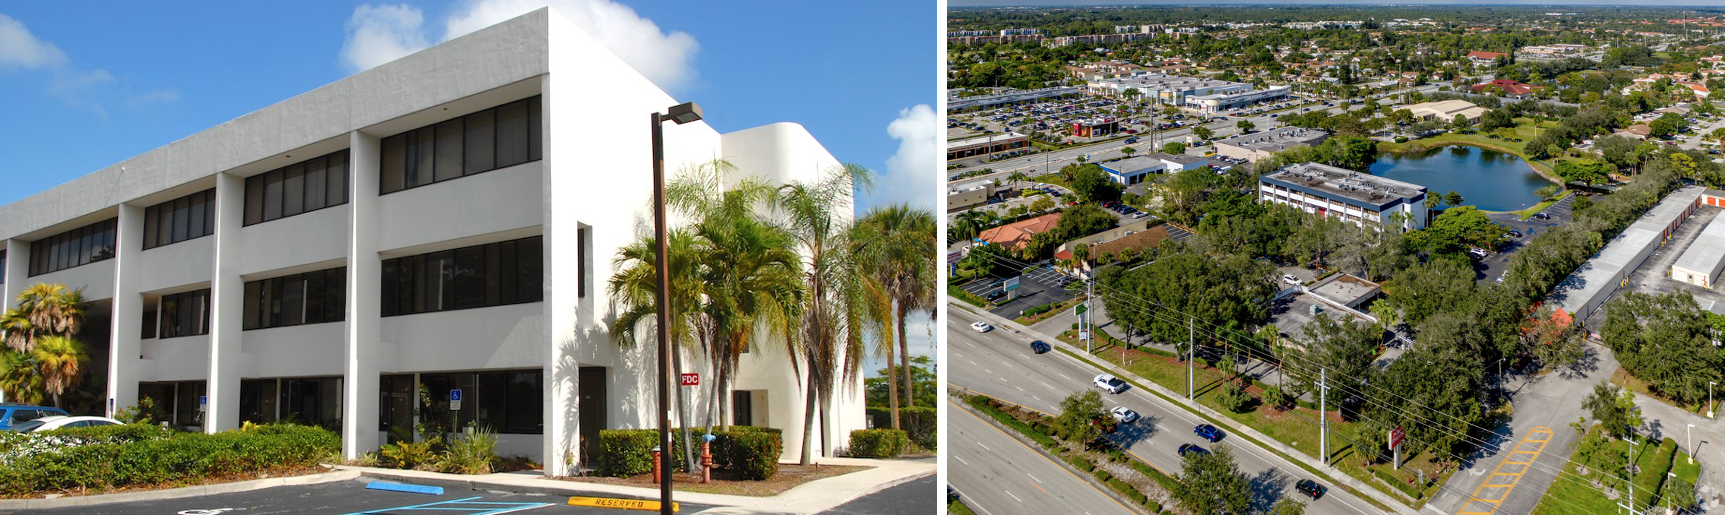 Office Rentals at Lakeview Corporate Center in Lake Worth, Florida Are Highly Desirable For Medical Practices